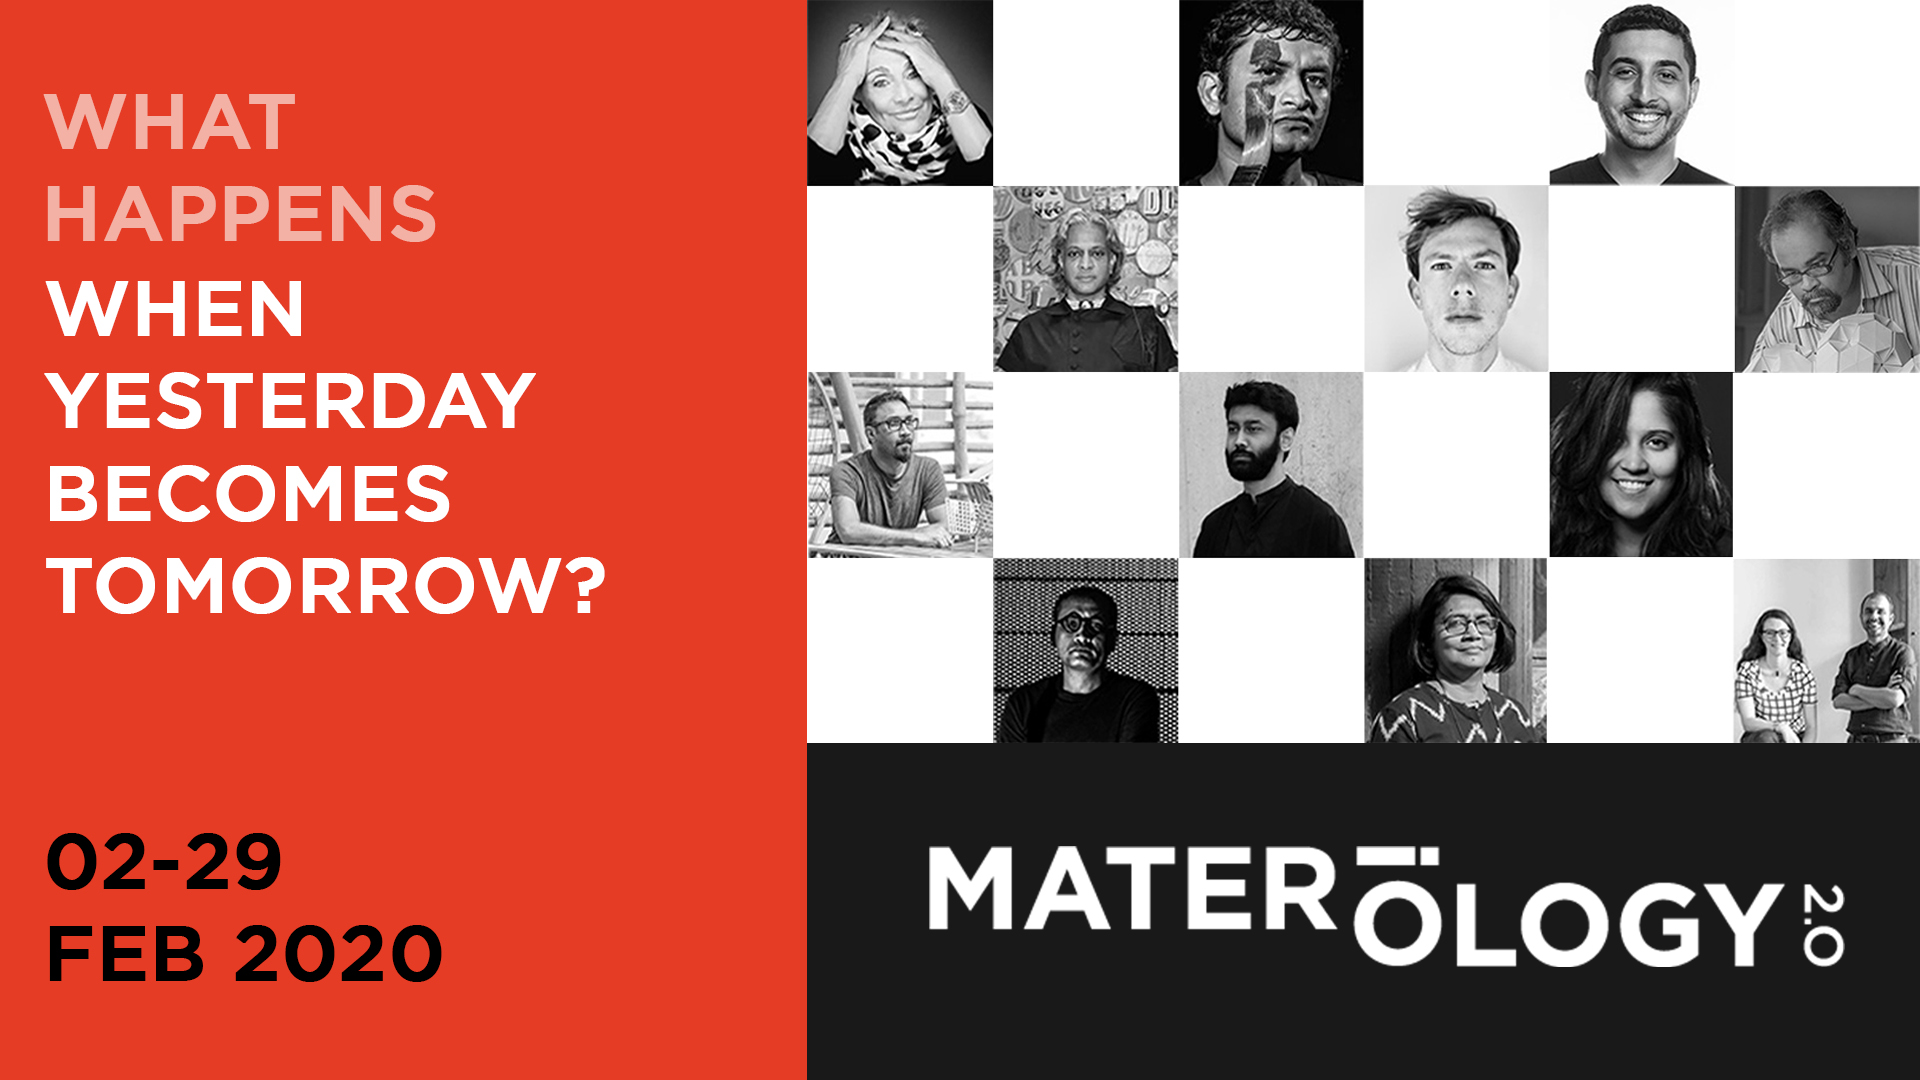 STIR presents Materiology 2.0 – What Happens When Yesterday Becomes Tomorrow? | What Happens When Yesterday Becomes Tomorrow | Materiology 2.0 | STIRworld